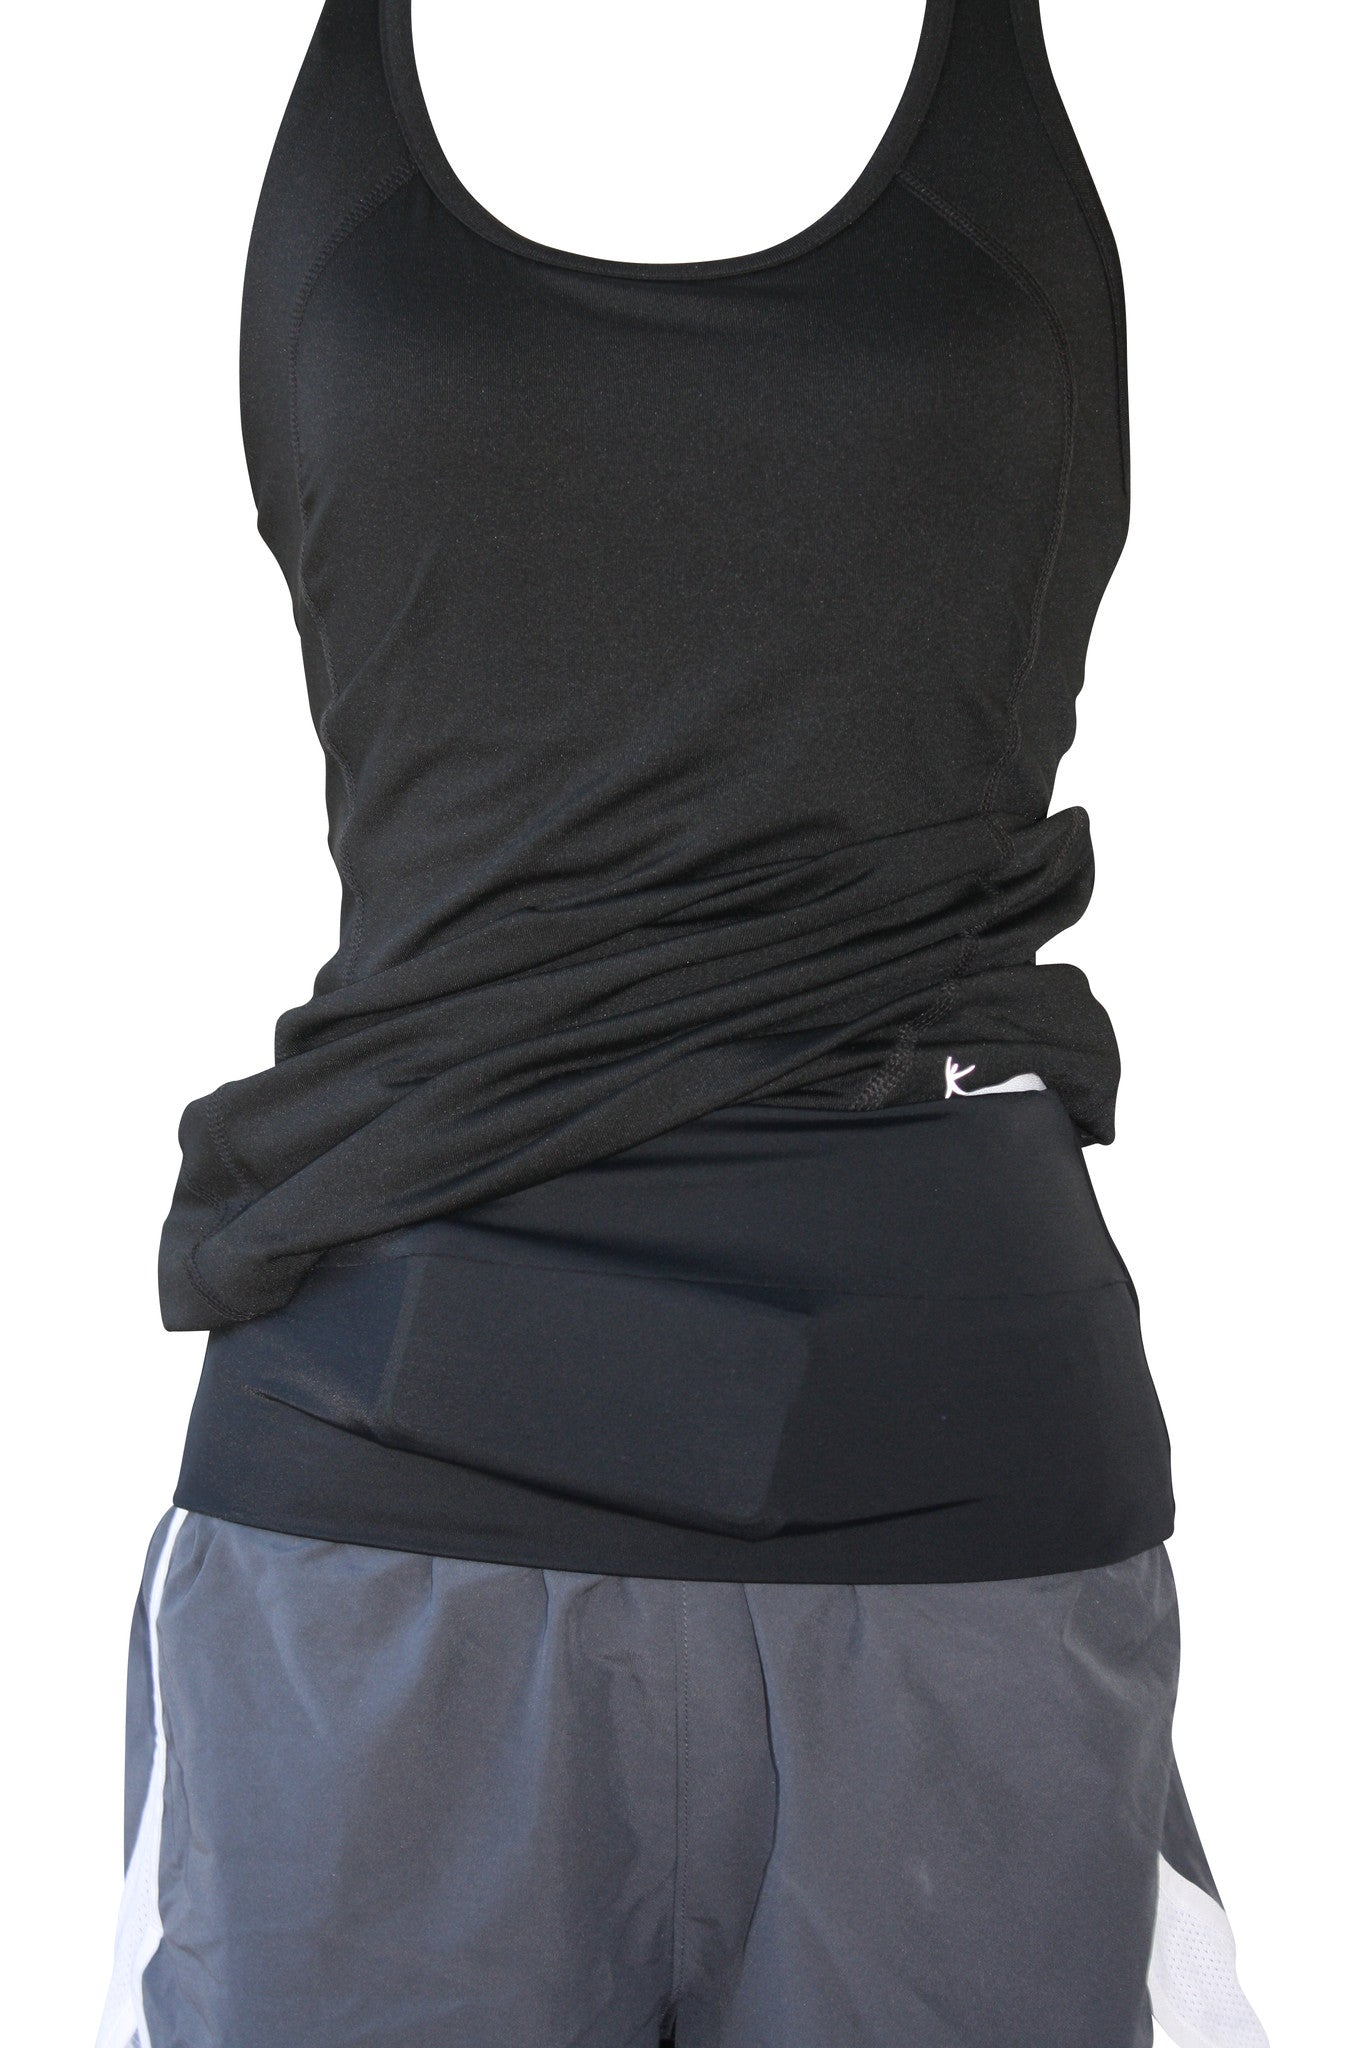 Solid Black Runner's Belt - speedzter  - 3